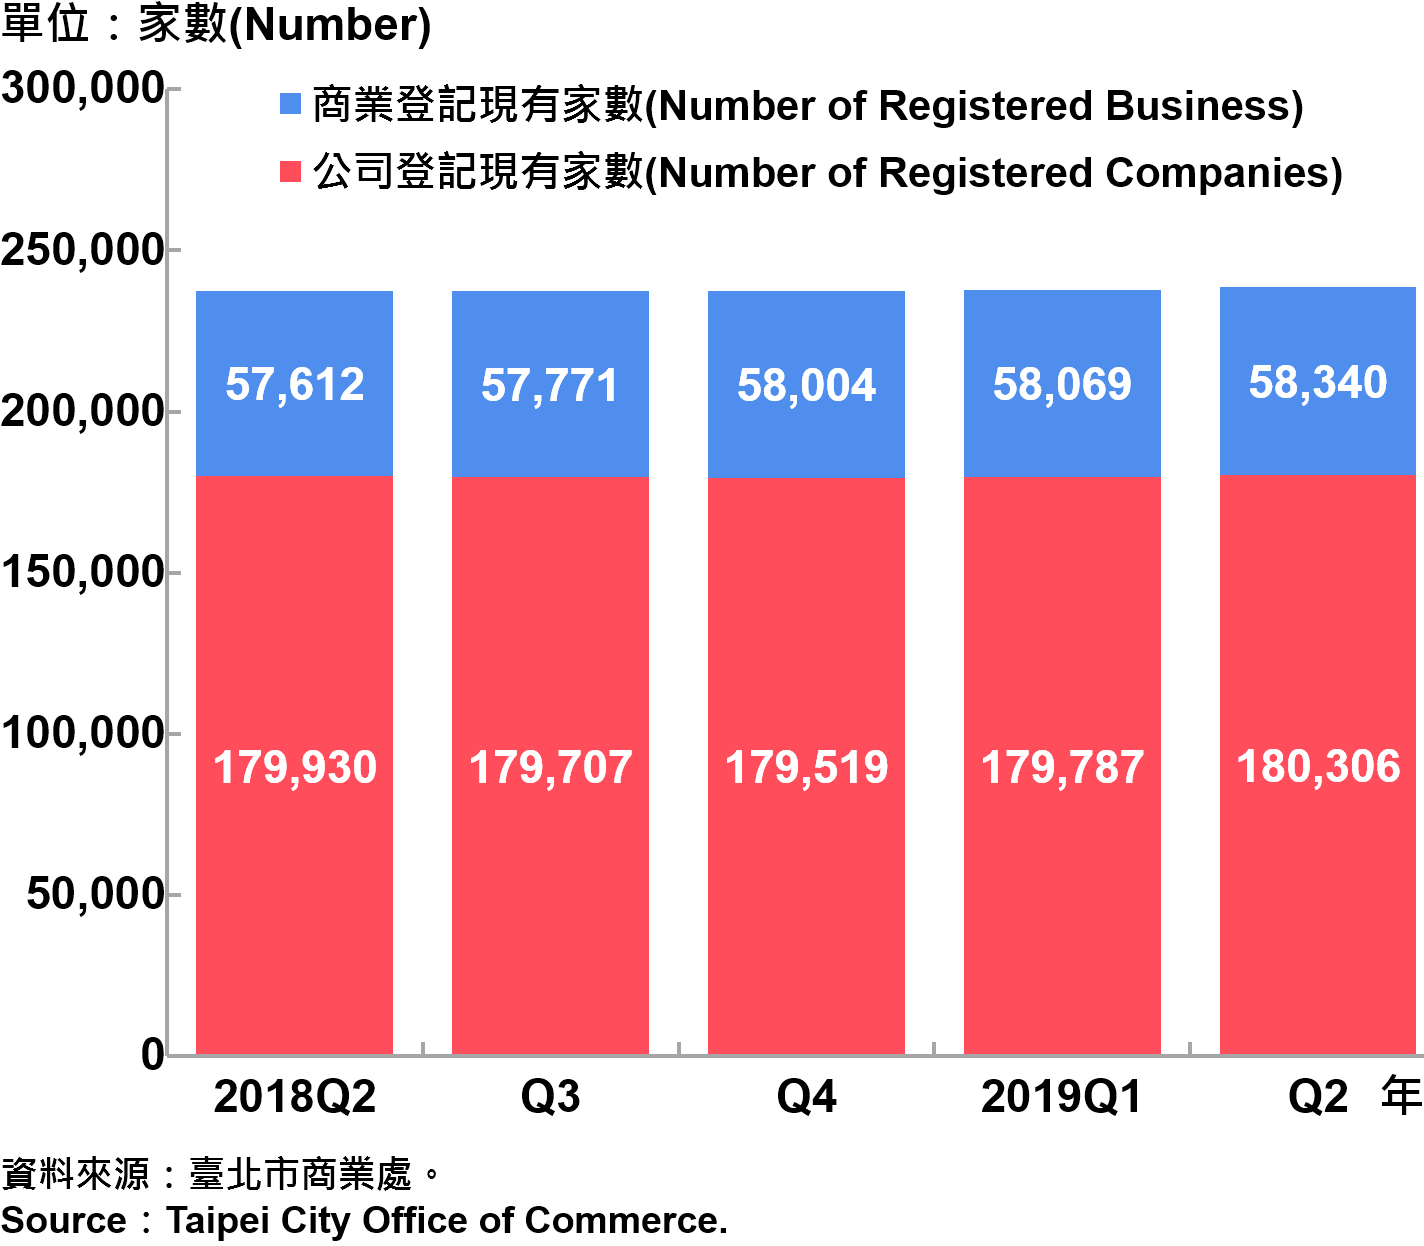 臺北市工商登記家數—2019Q2 Industry & Business Registration in Taipei—2019Q2